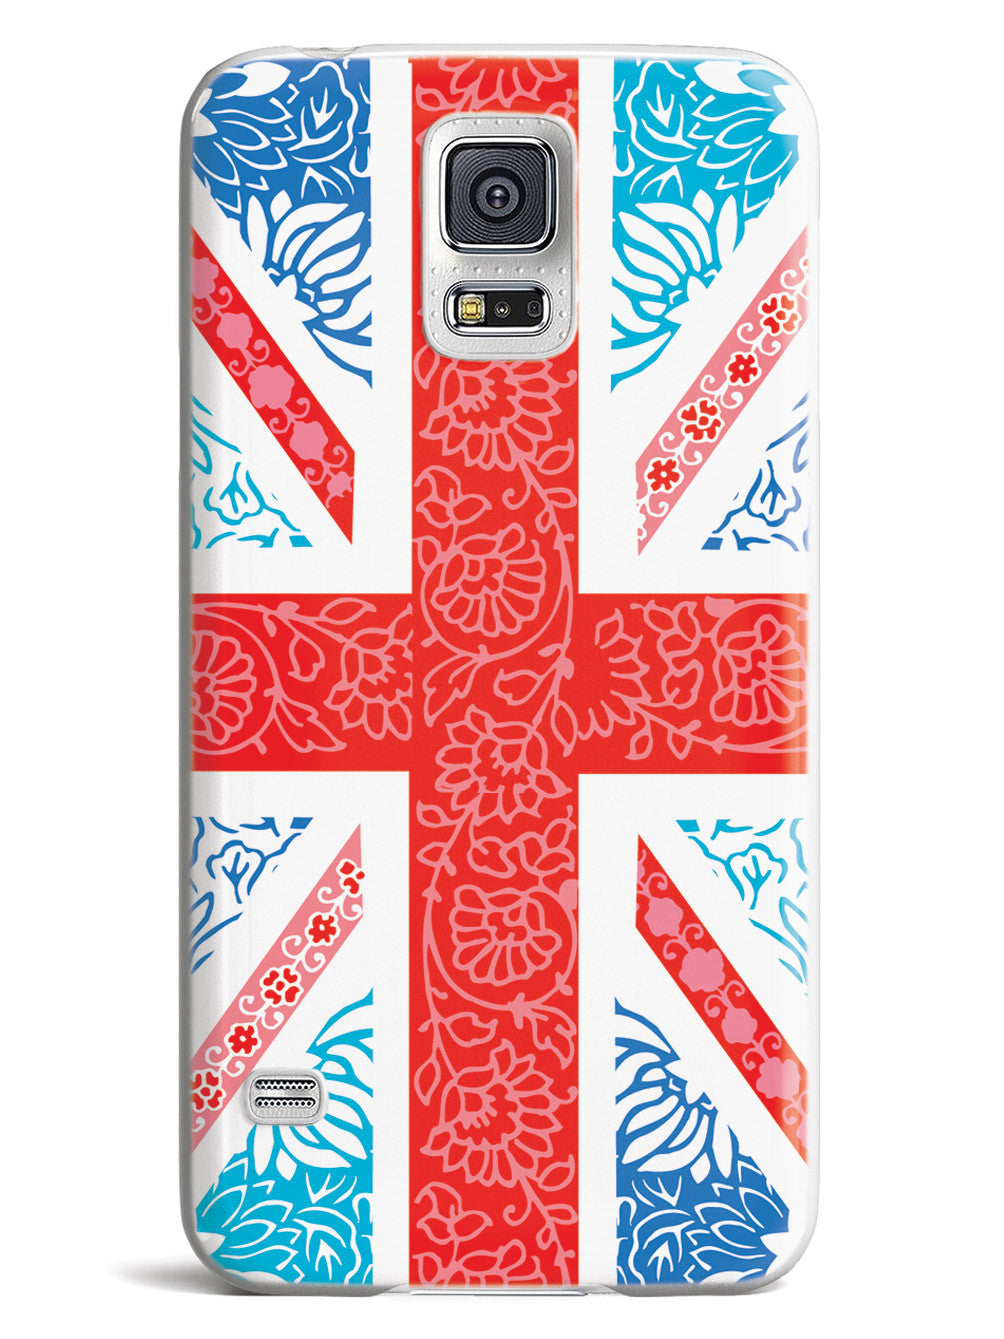 Cute Floral British Flag Case